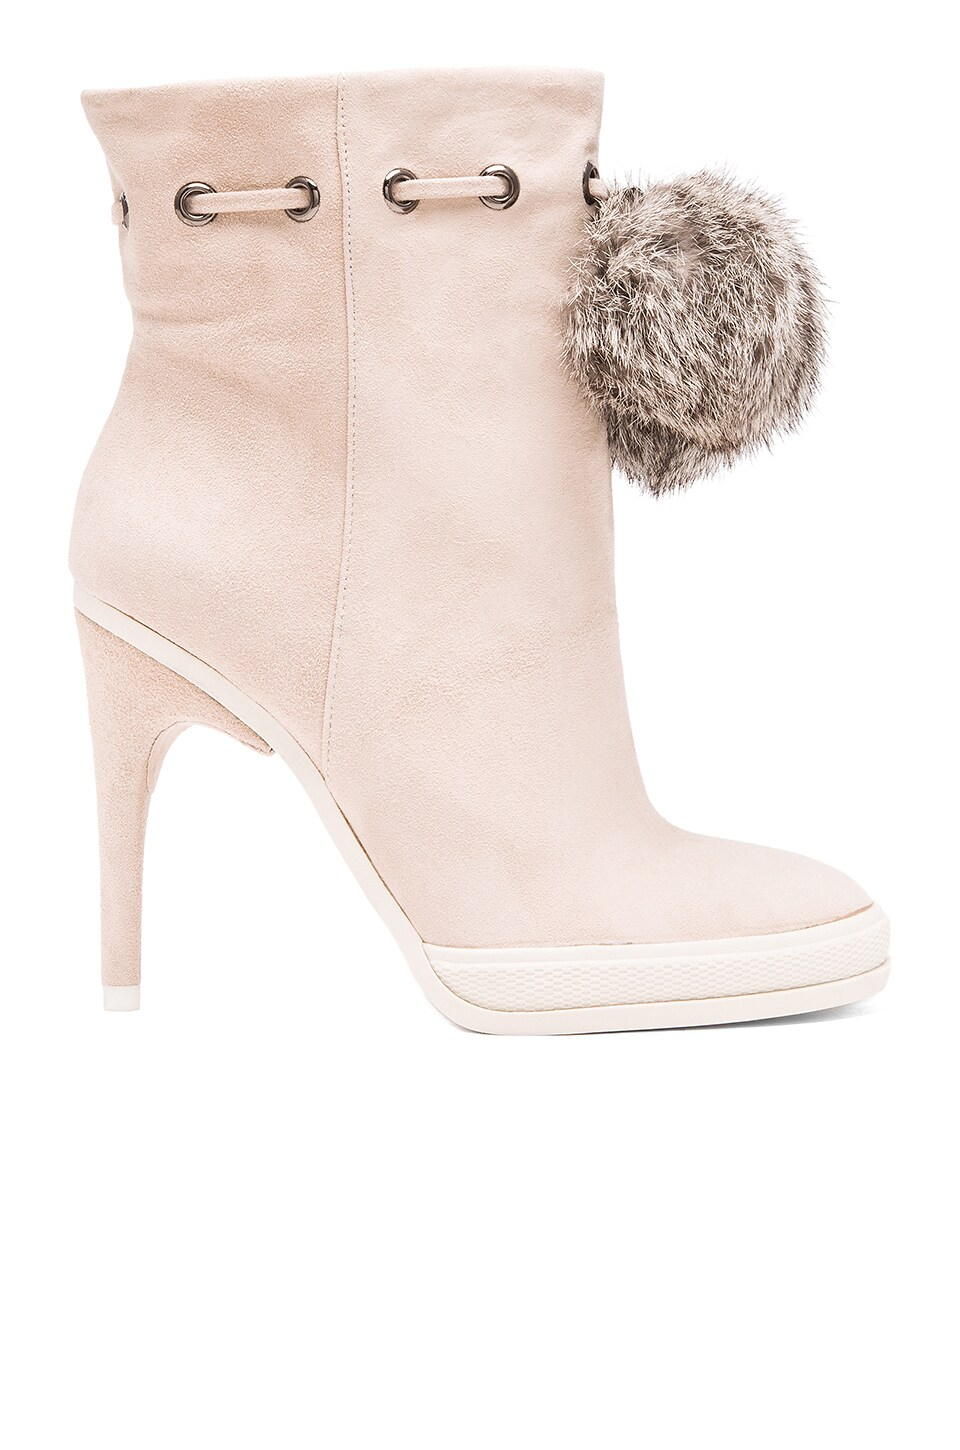 BCBGMAXAZRIA Perry Bootie With Rabbit Fur Pompoms in Alabaster Pink & White